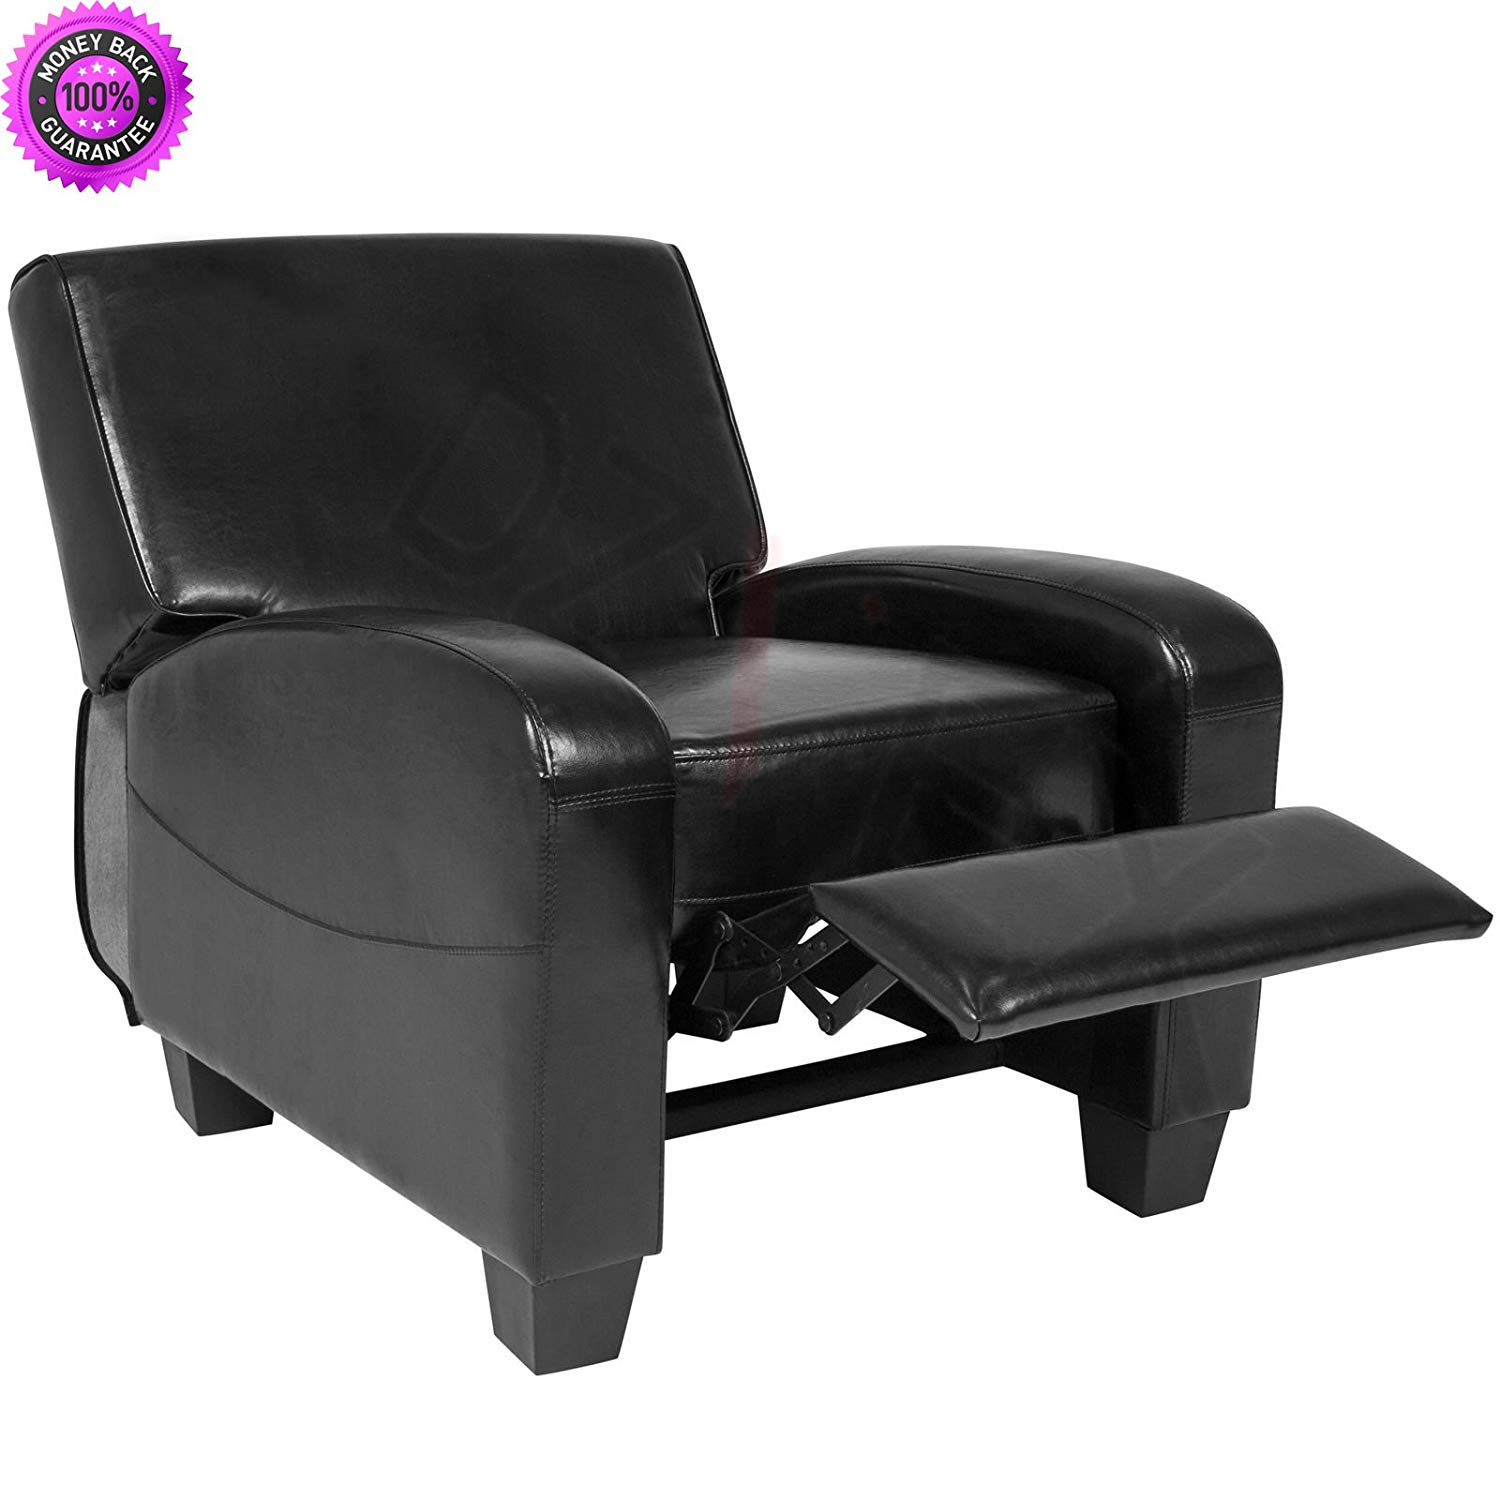 recliner chairs cheap pier one rattan dining find deals on line at alibaba com get quotations dzvex padded upholstery leather home theater chair black and restaurant stacking waiting